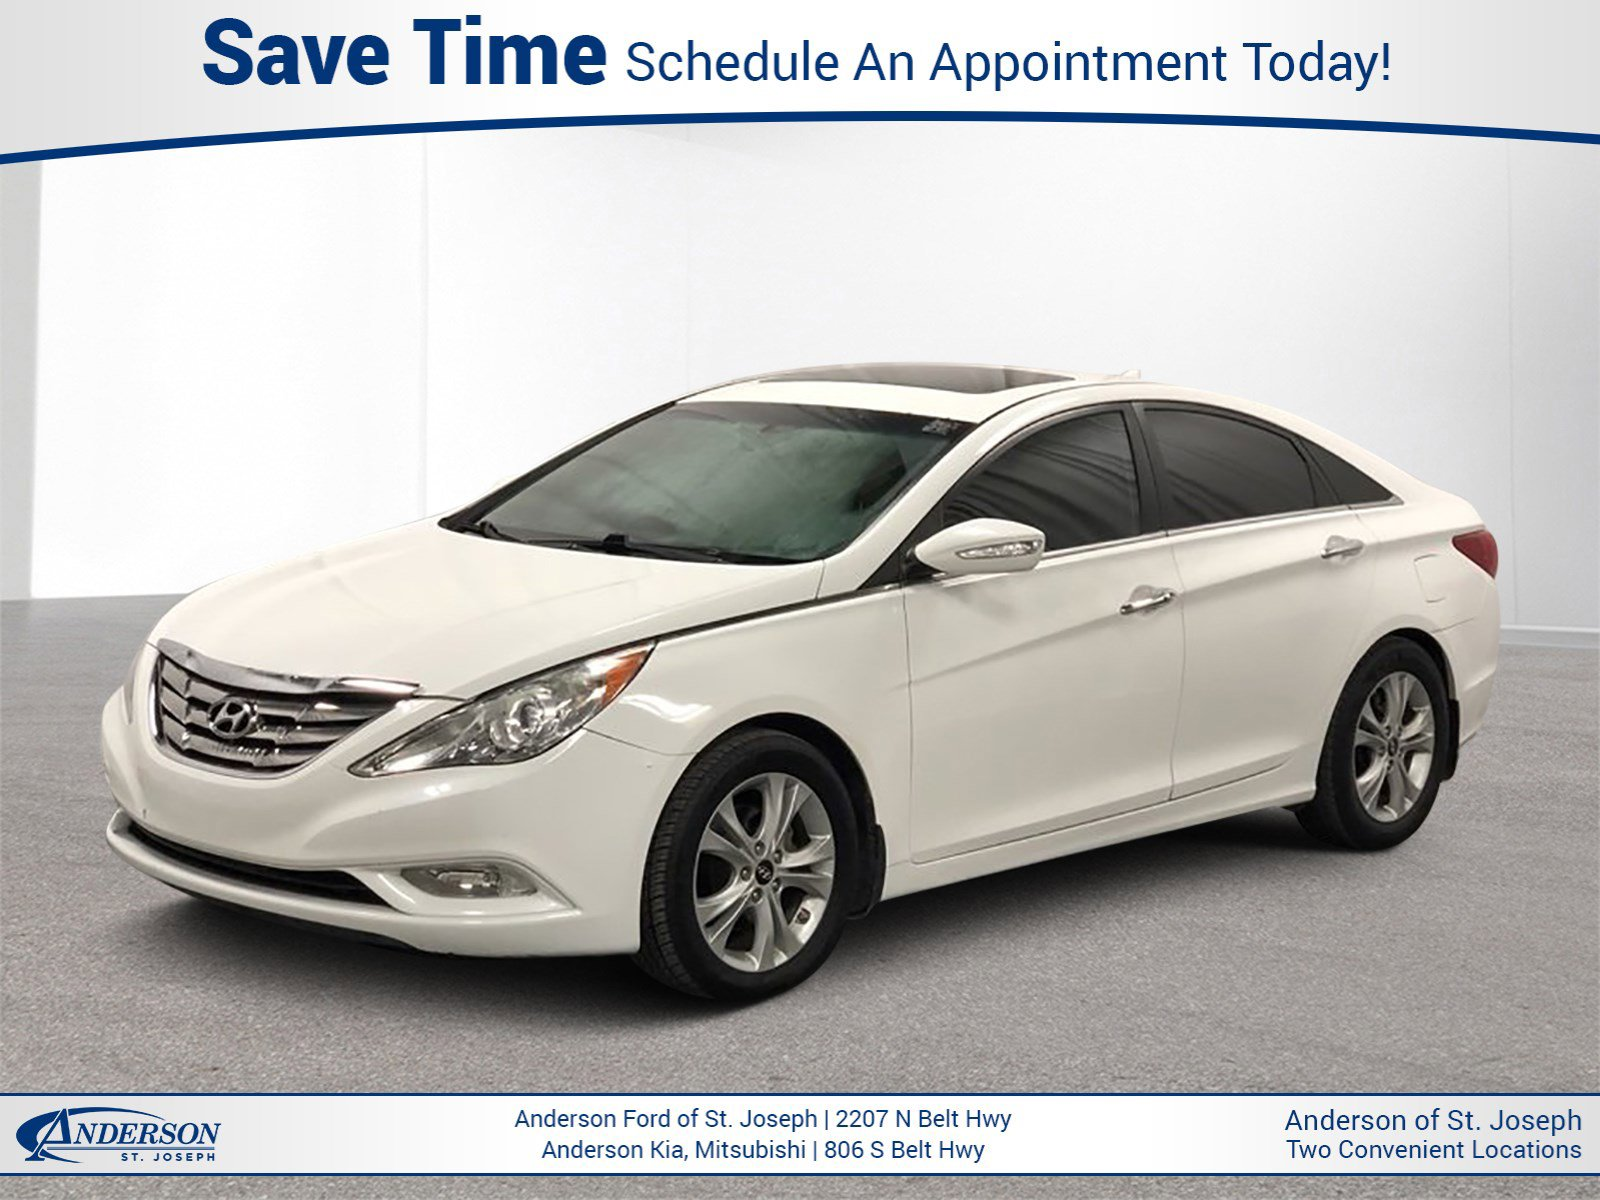 Used 2011 Hyundai Sonata Ltd 4dr Car for sale in St Joseph MO